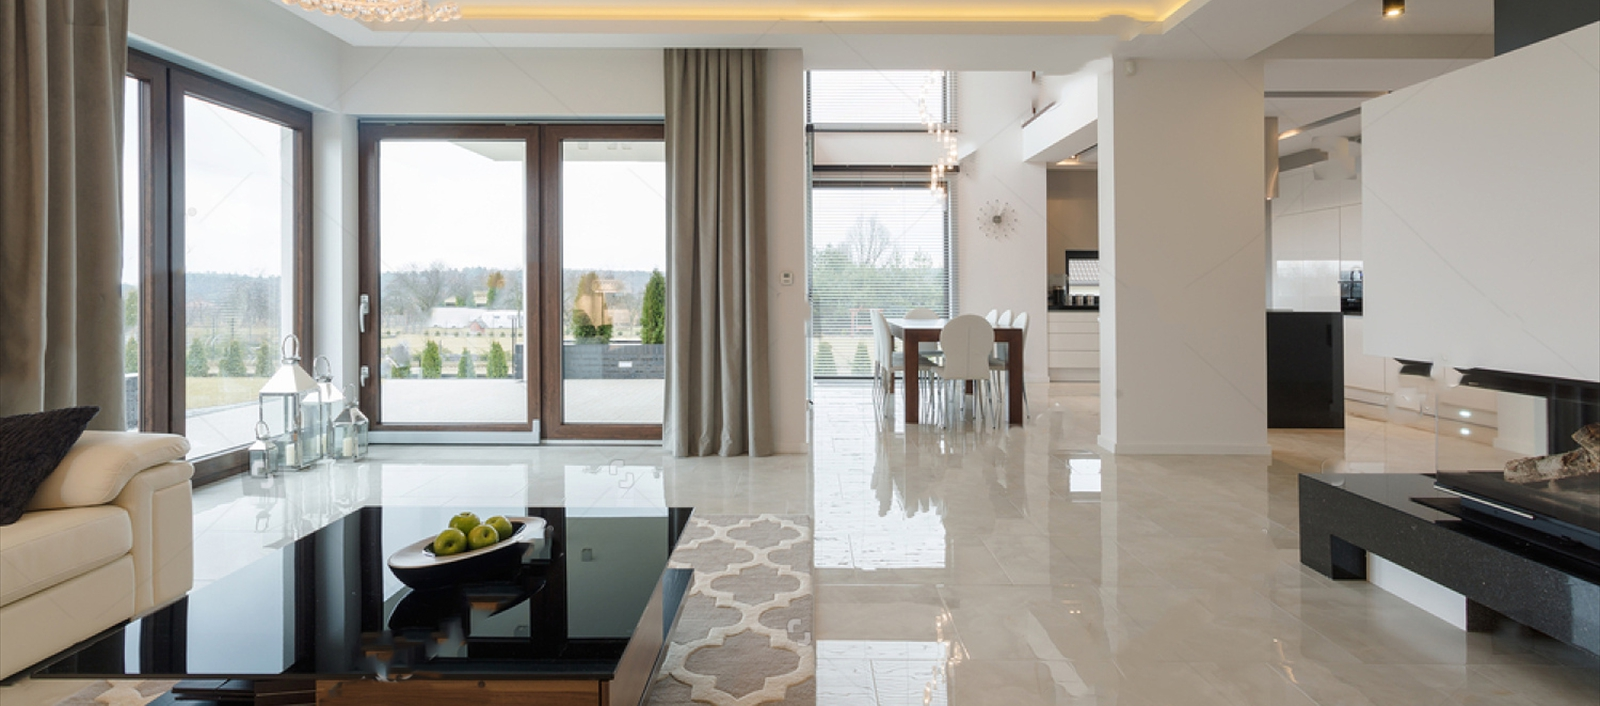 stock-photo-photo-of-spacious-expensive-living-room-with-shining-marble-floor-280370030_k